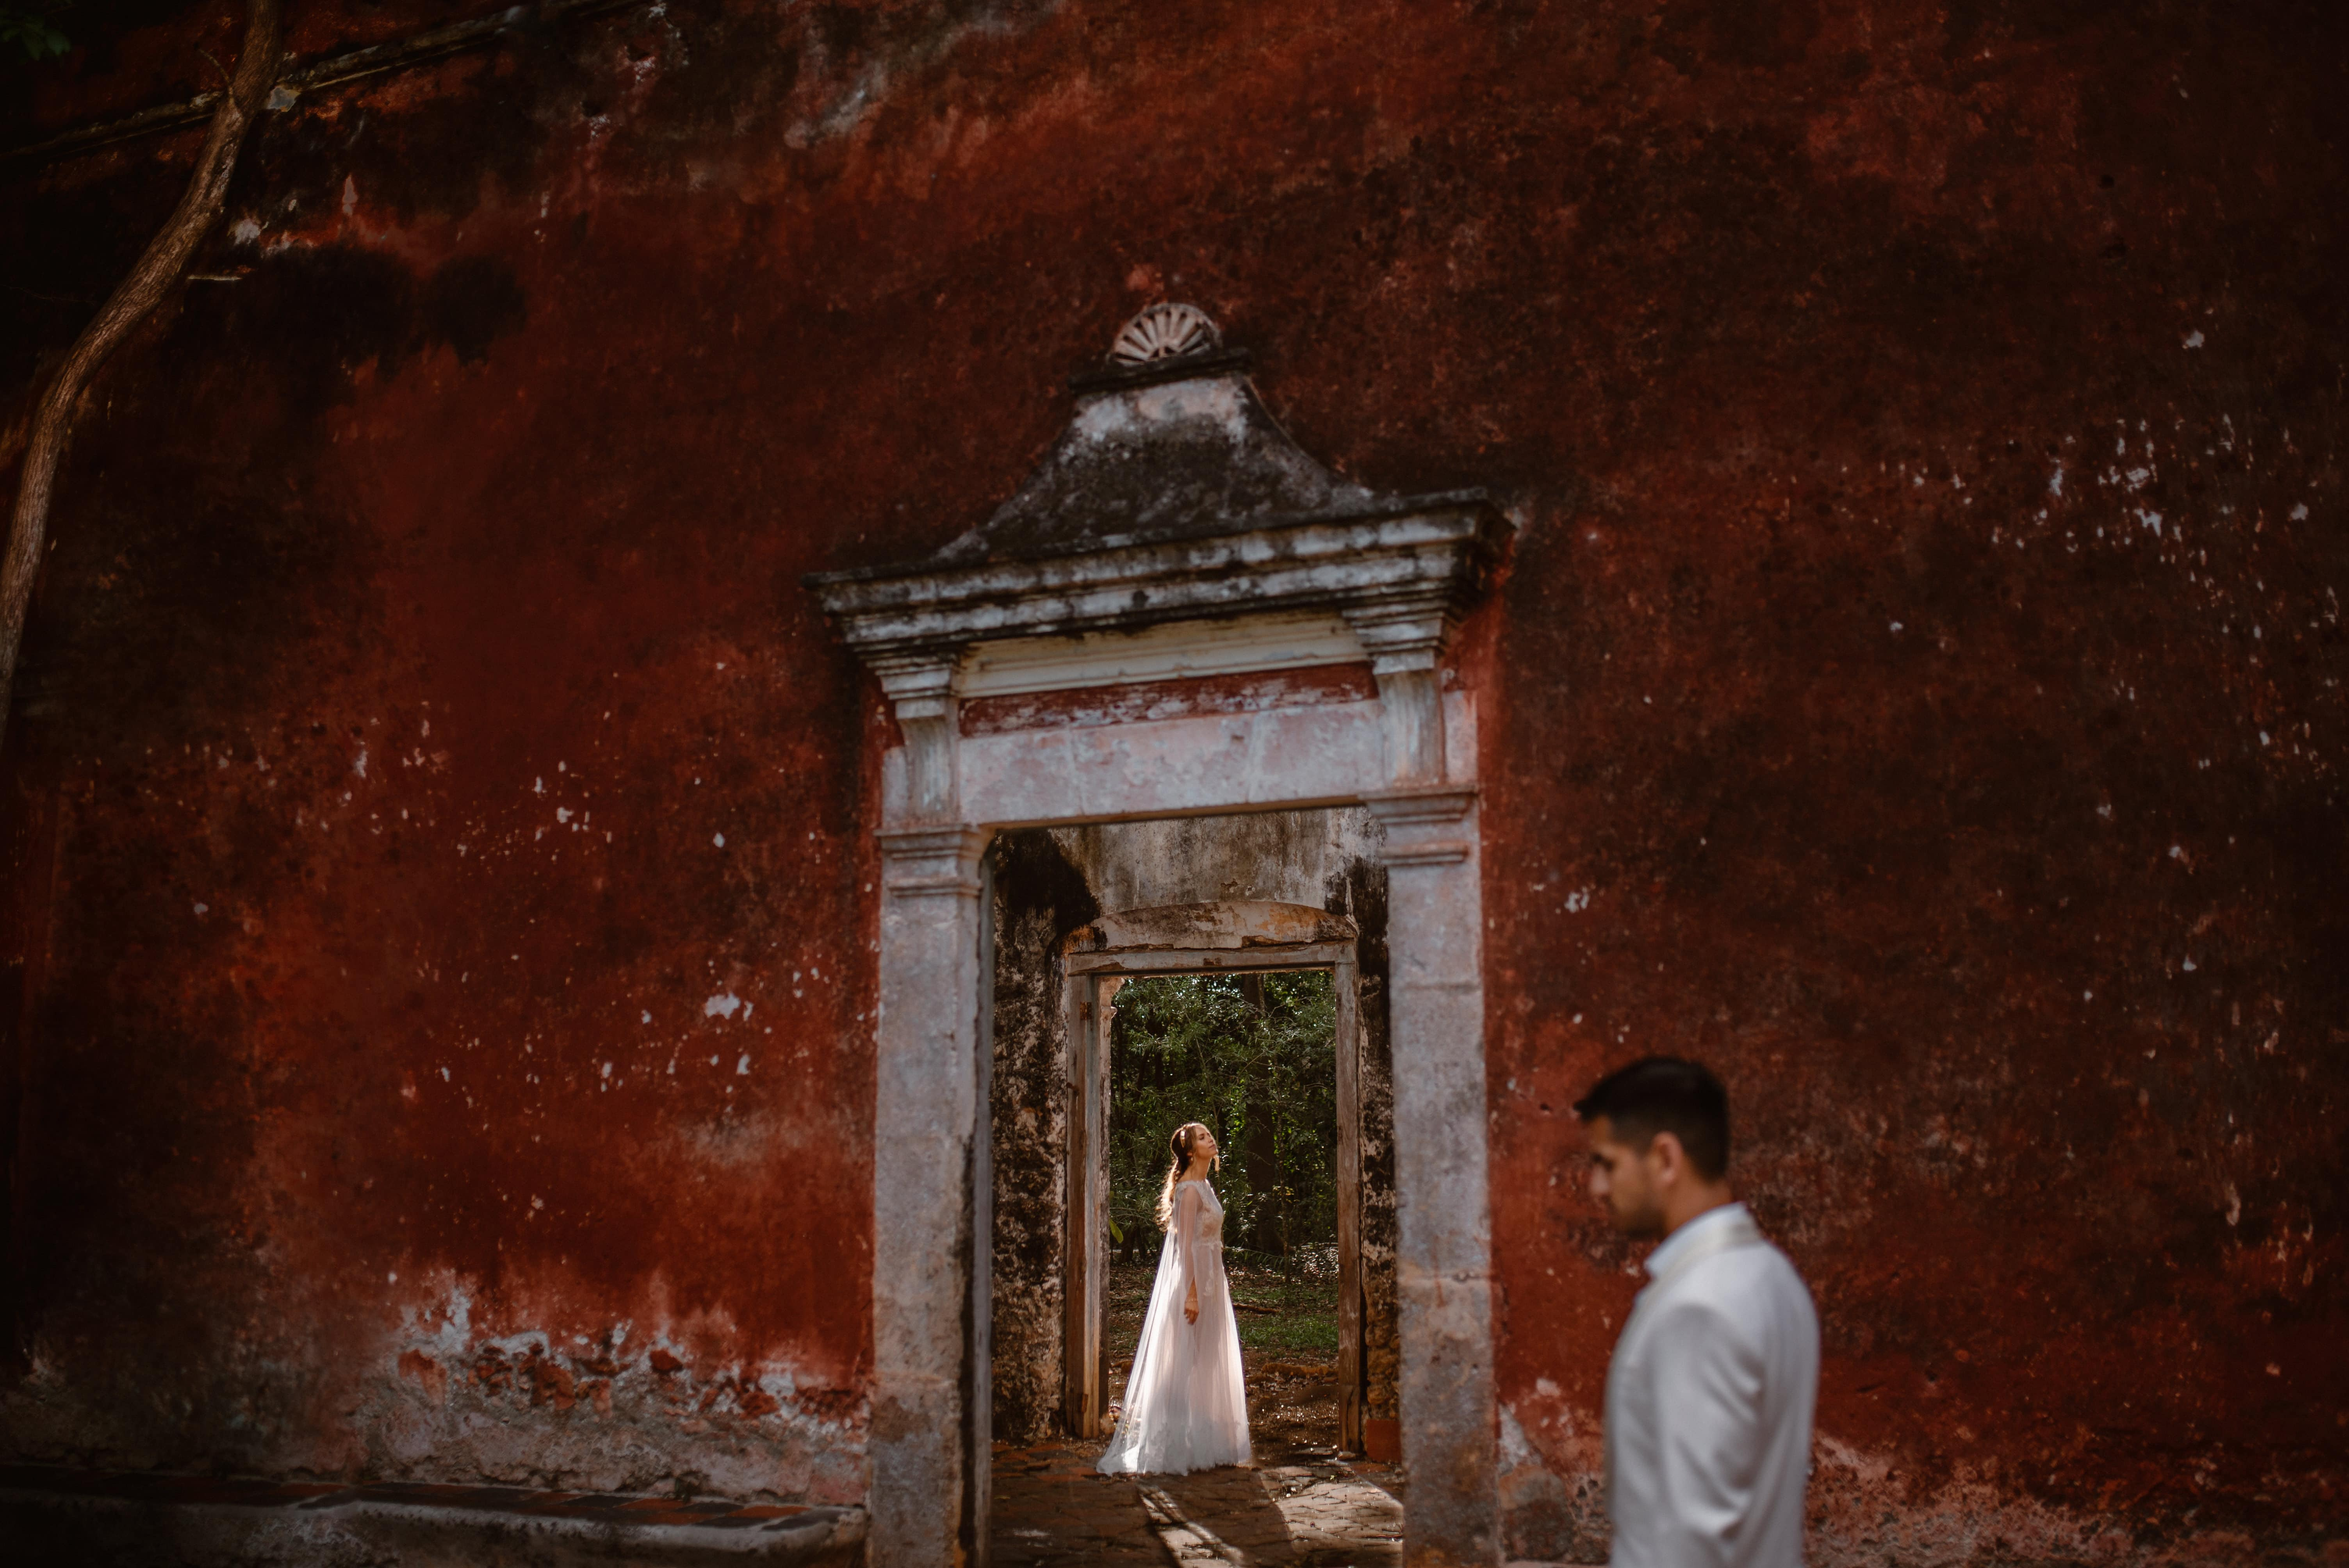 A bride is outlined by the sun standing in the doorway of ruins in Mexico. The groom is blurred in the foreground, standing against a large textured red wall. Eloping in Mexico is one of the best location to elope.